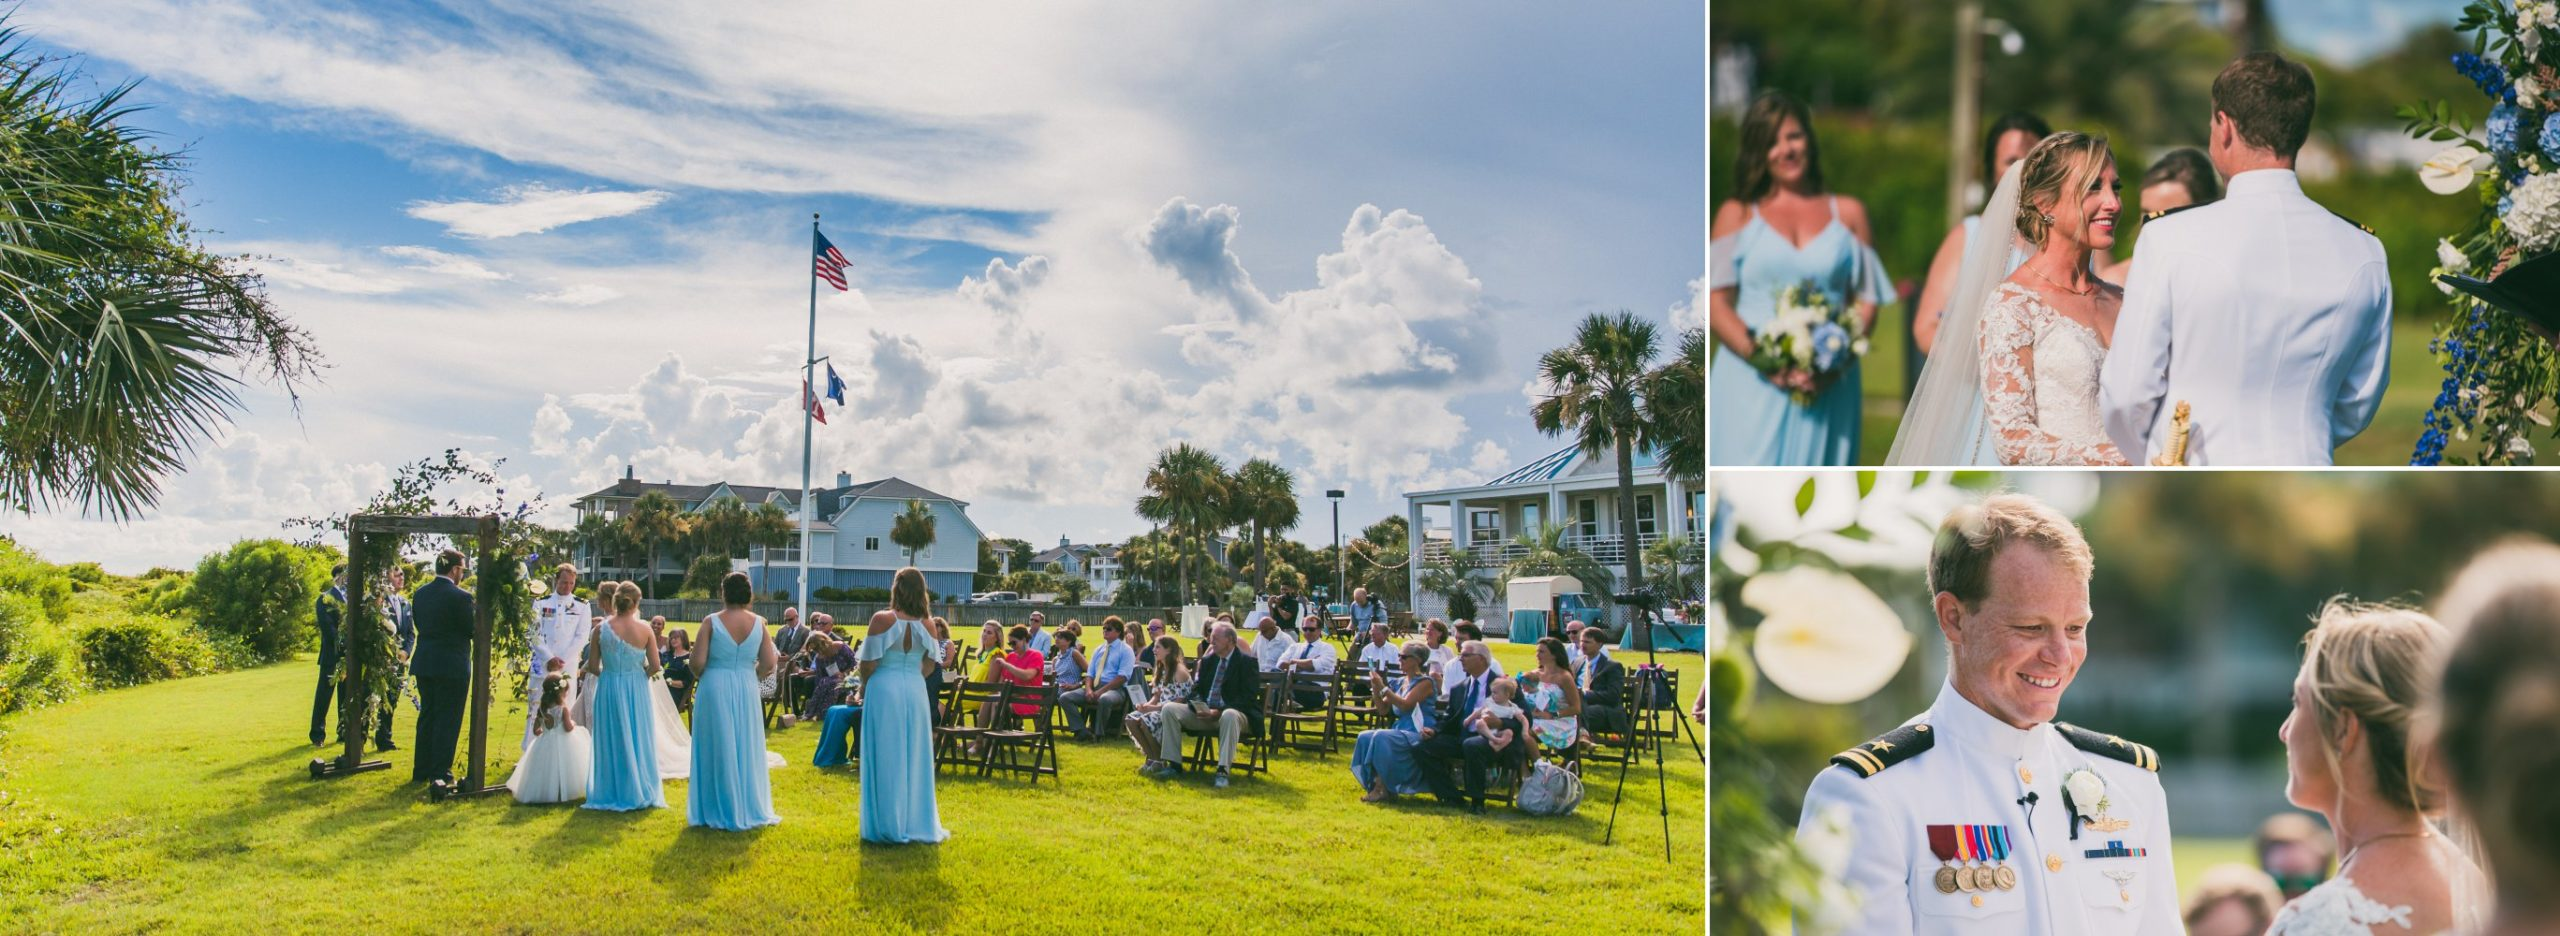 Citadel Beach House Wedding